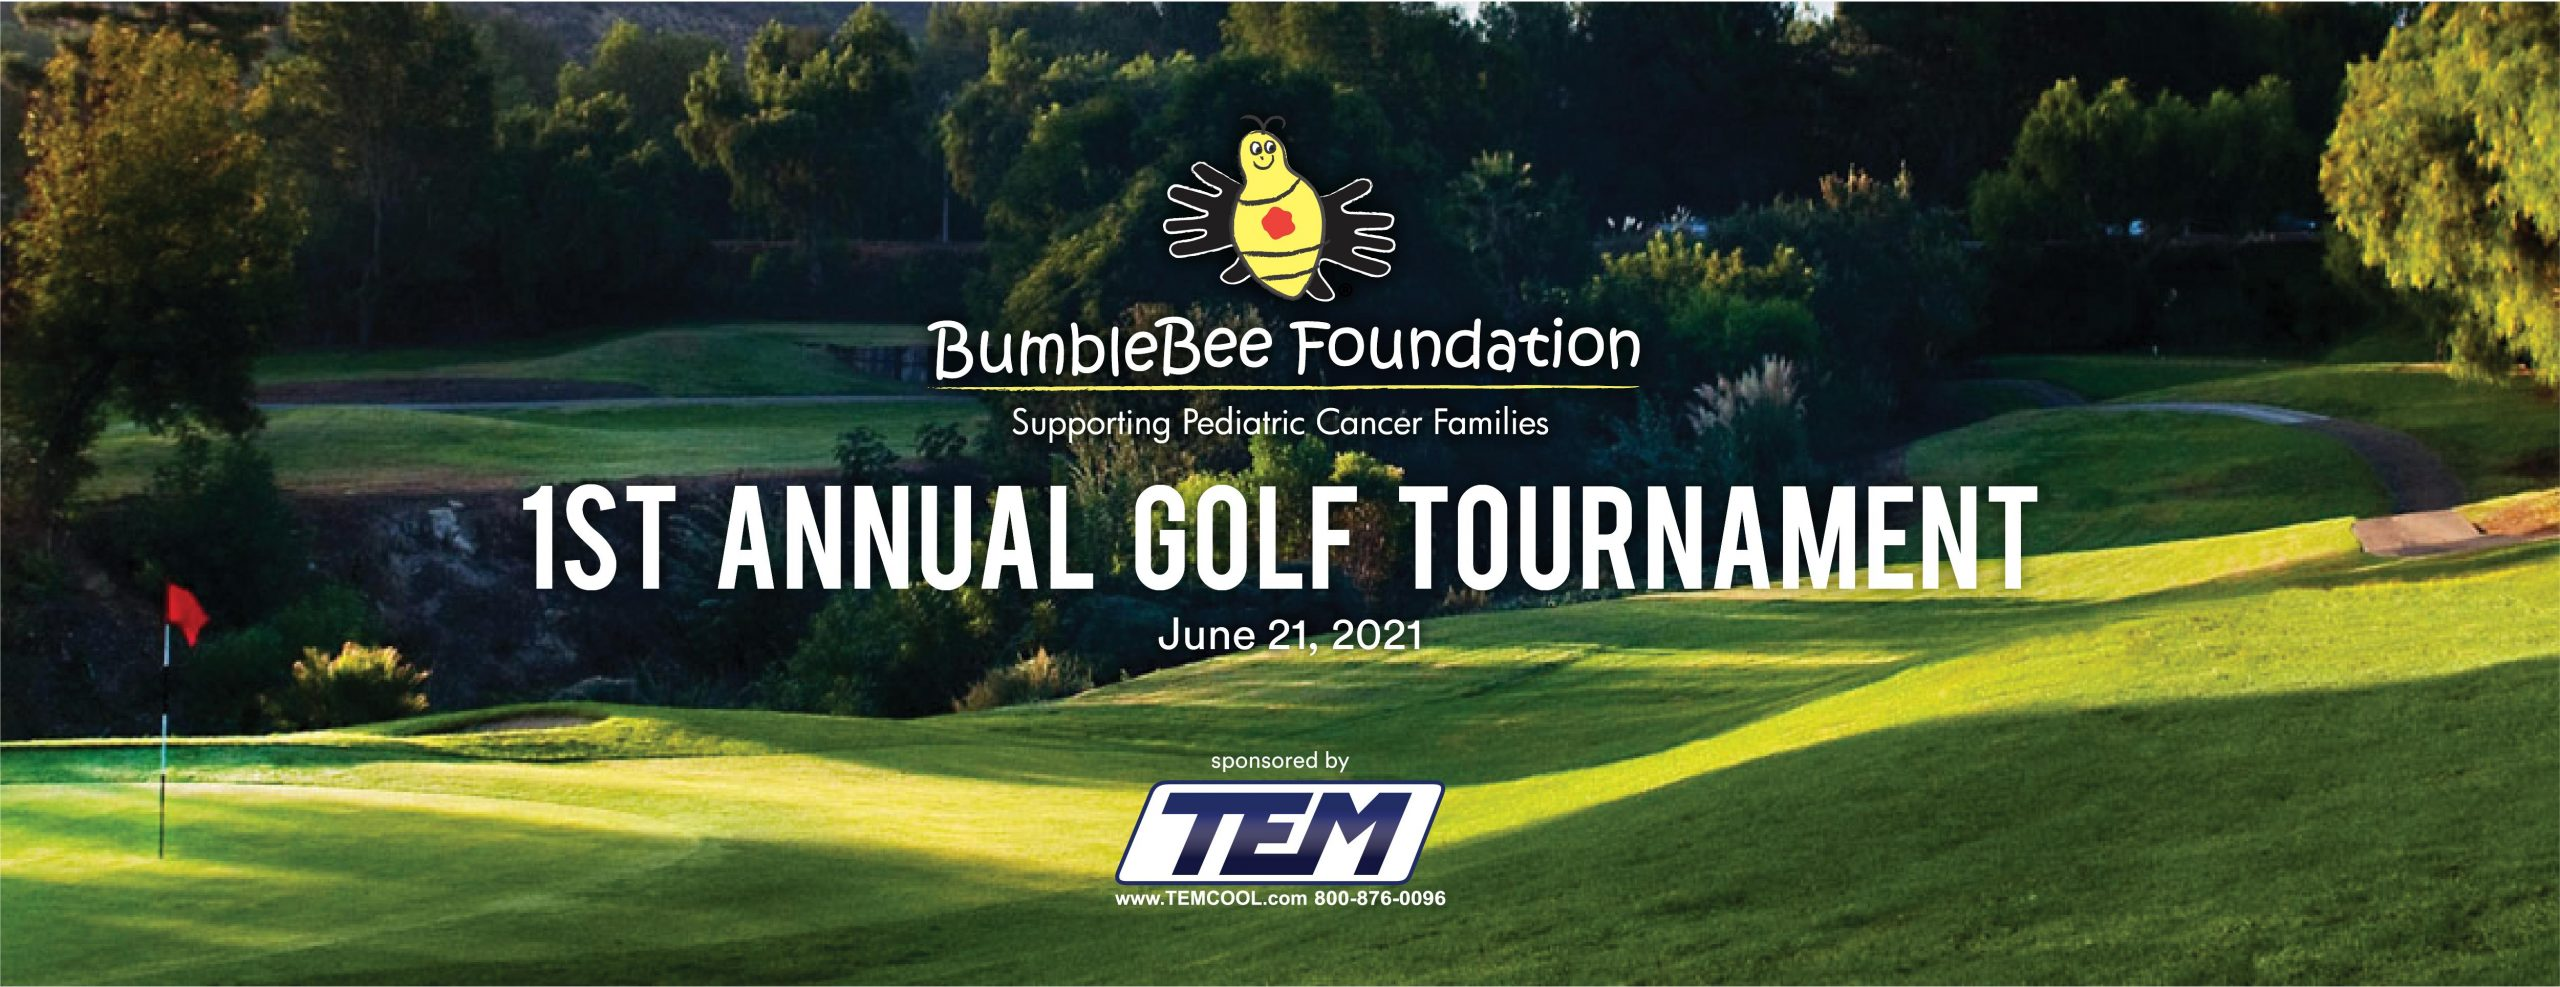 1st Annual BumbleBee Foundation Golf Tournament